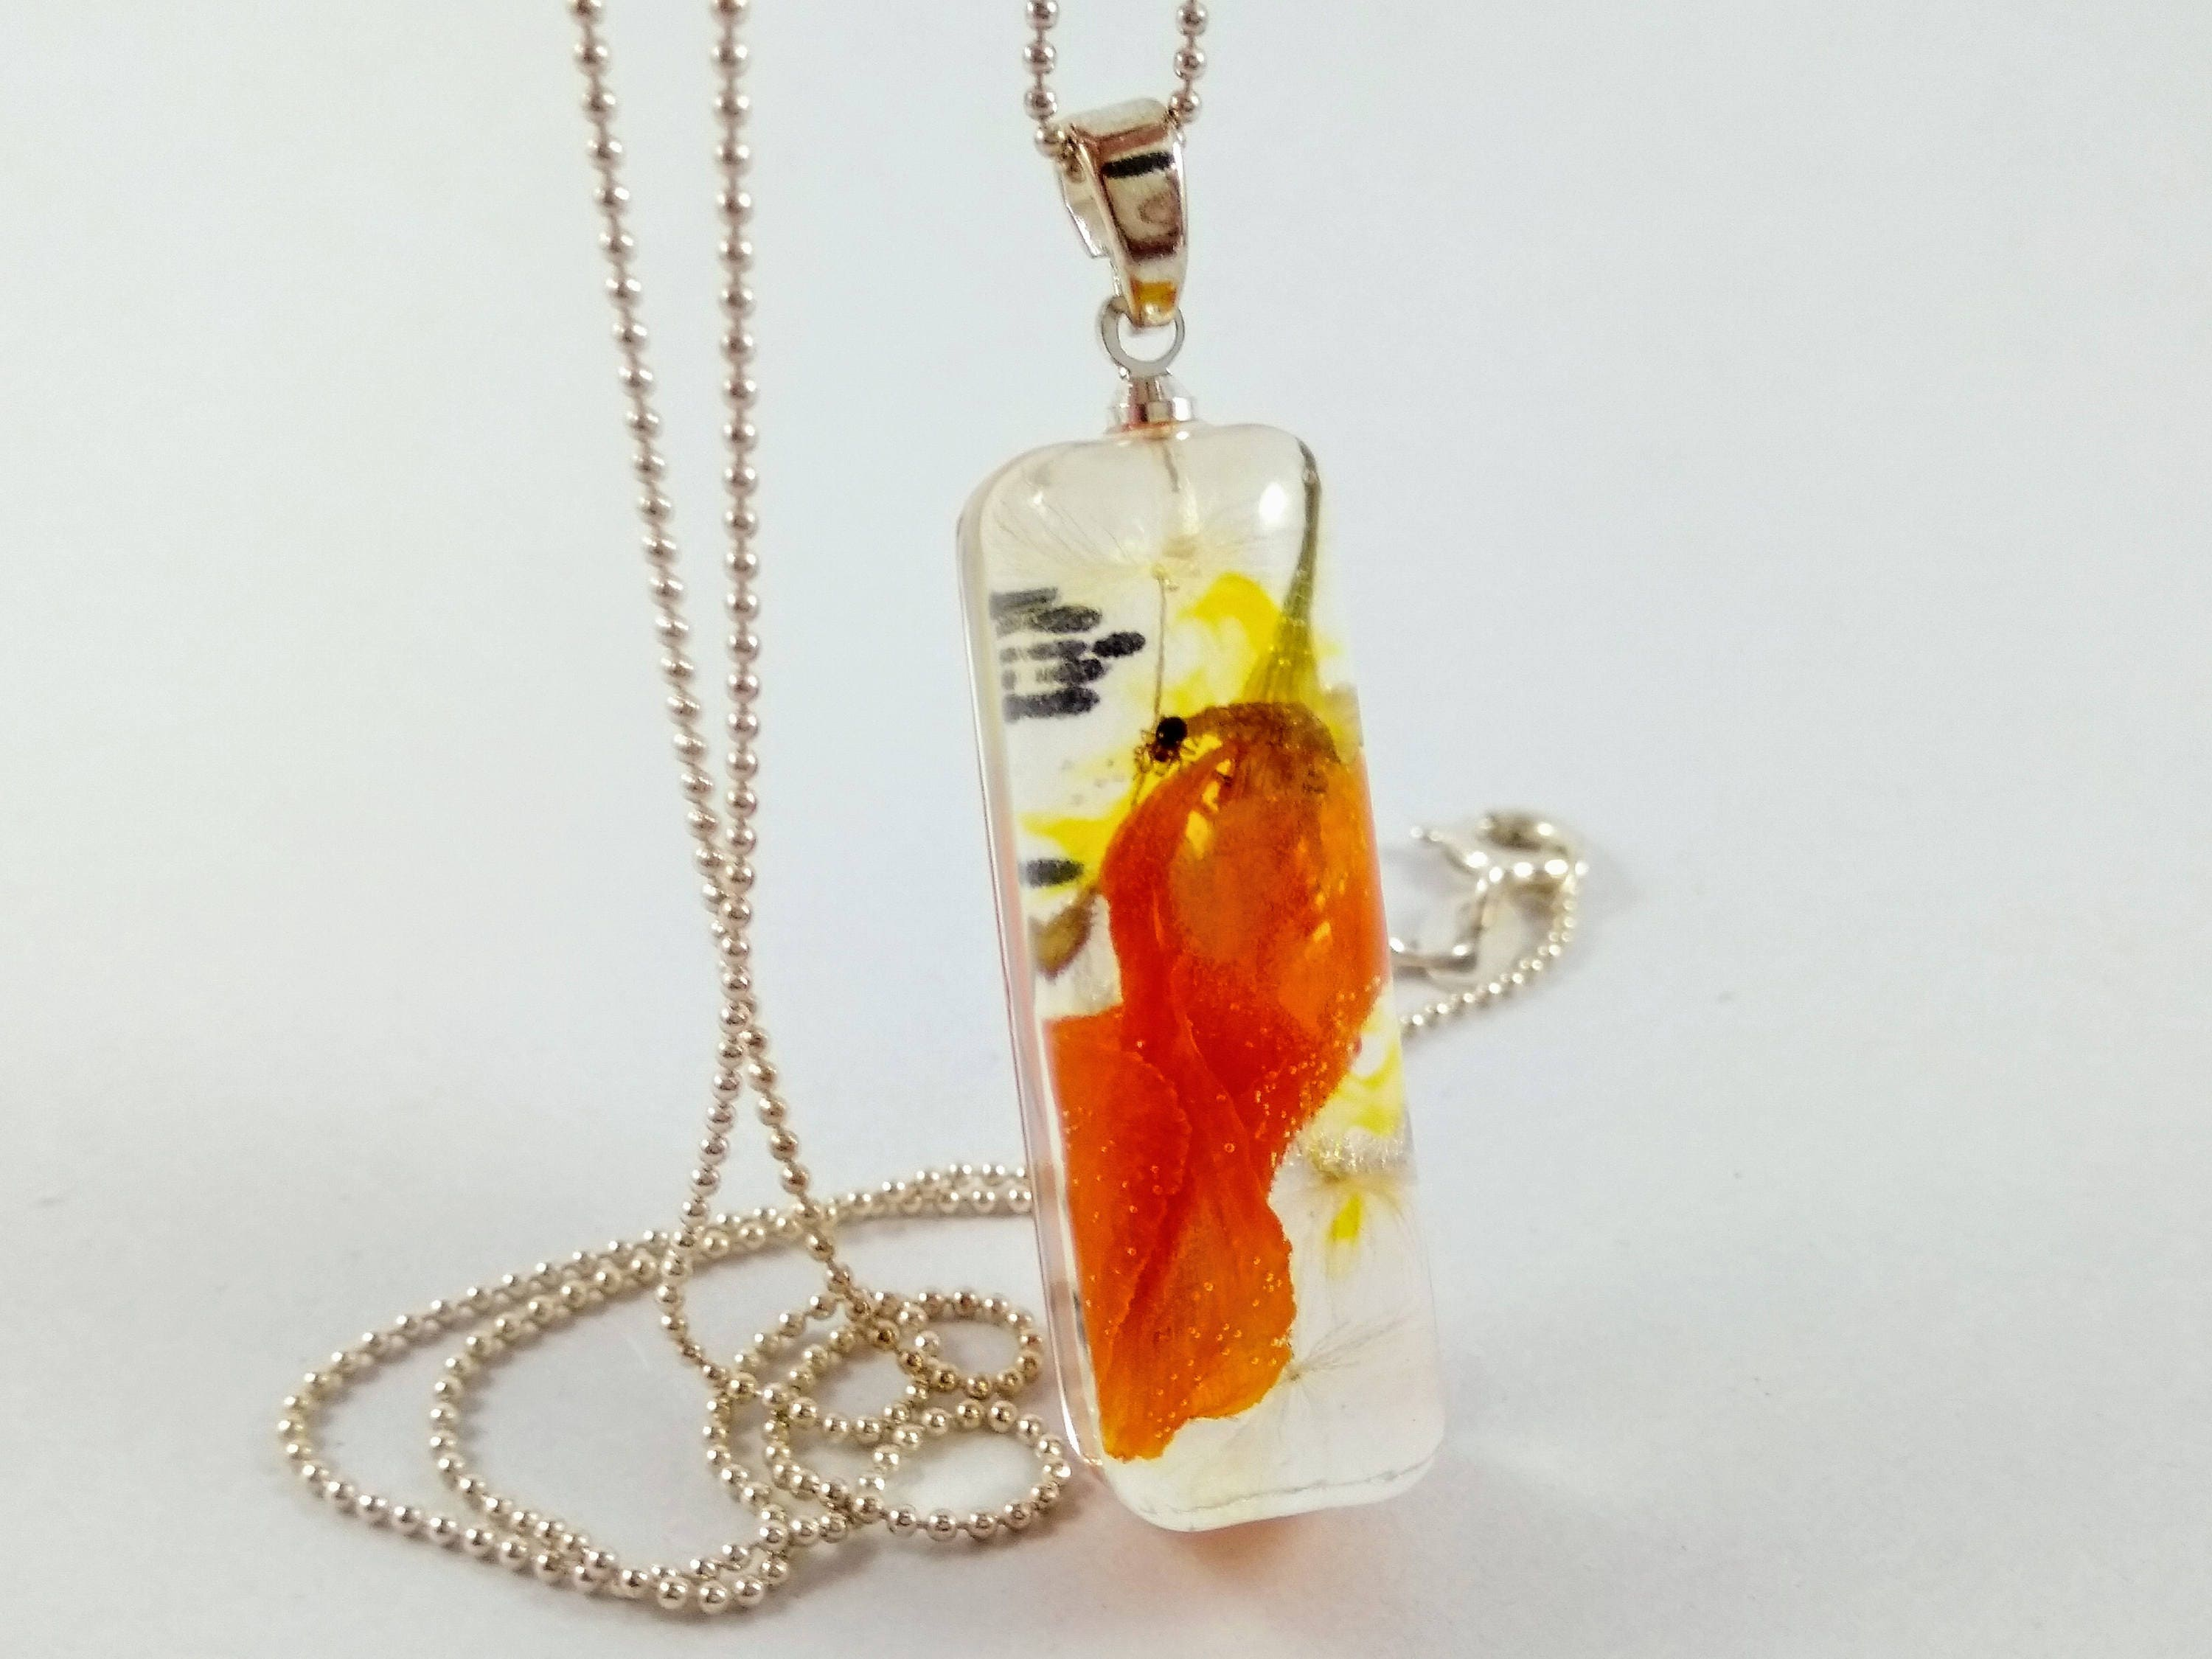 Resin Necklace With Real Poppy Flower And Dandelion Seeds